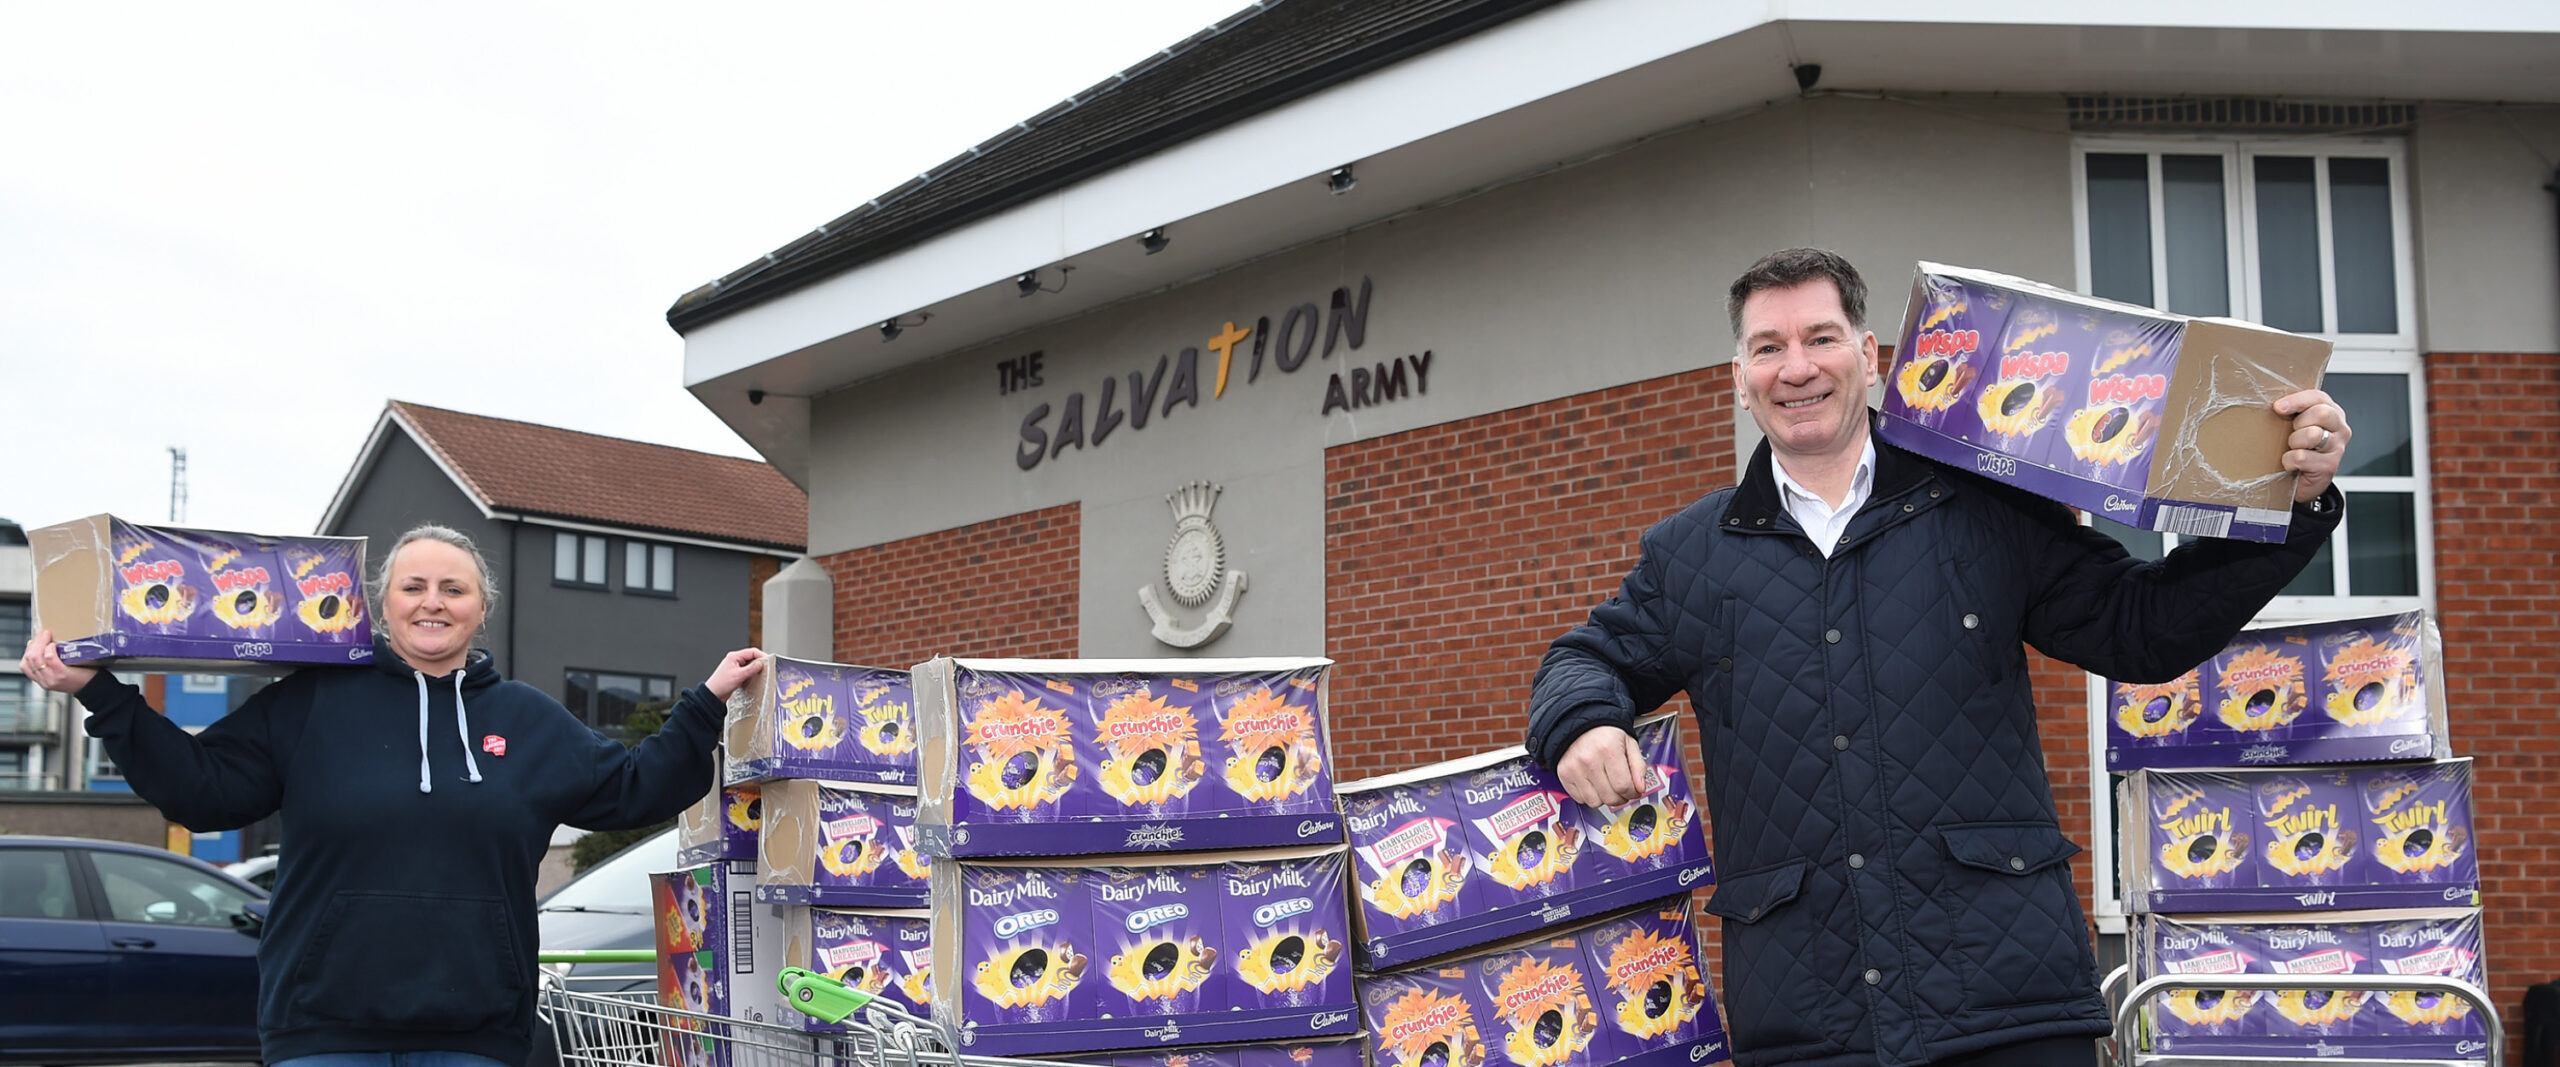 MHA Moore and Smalley brings Easter cheer to Preston with Salvation Army egg donation